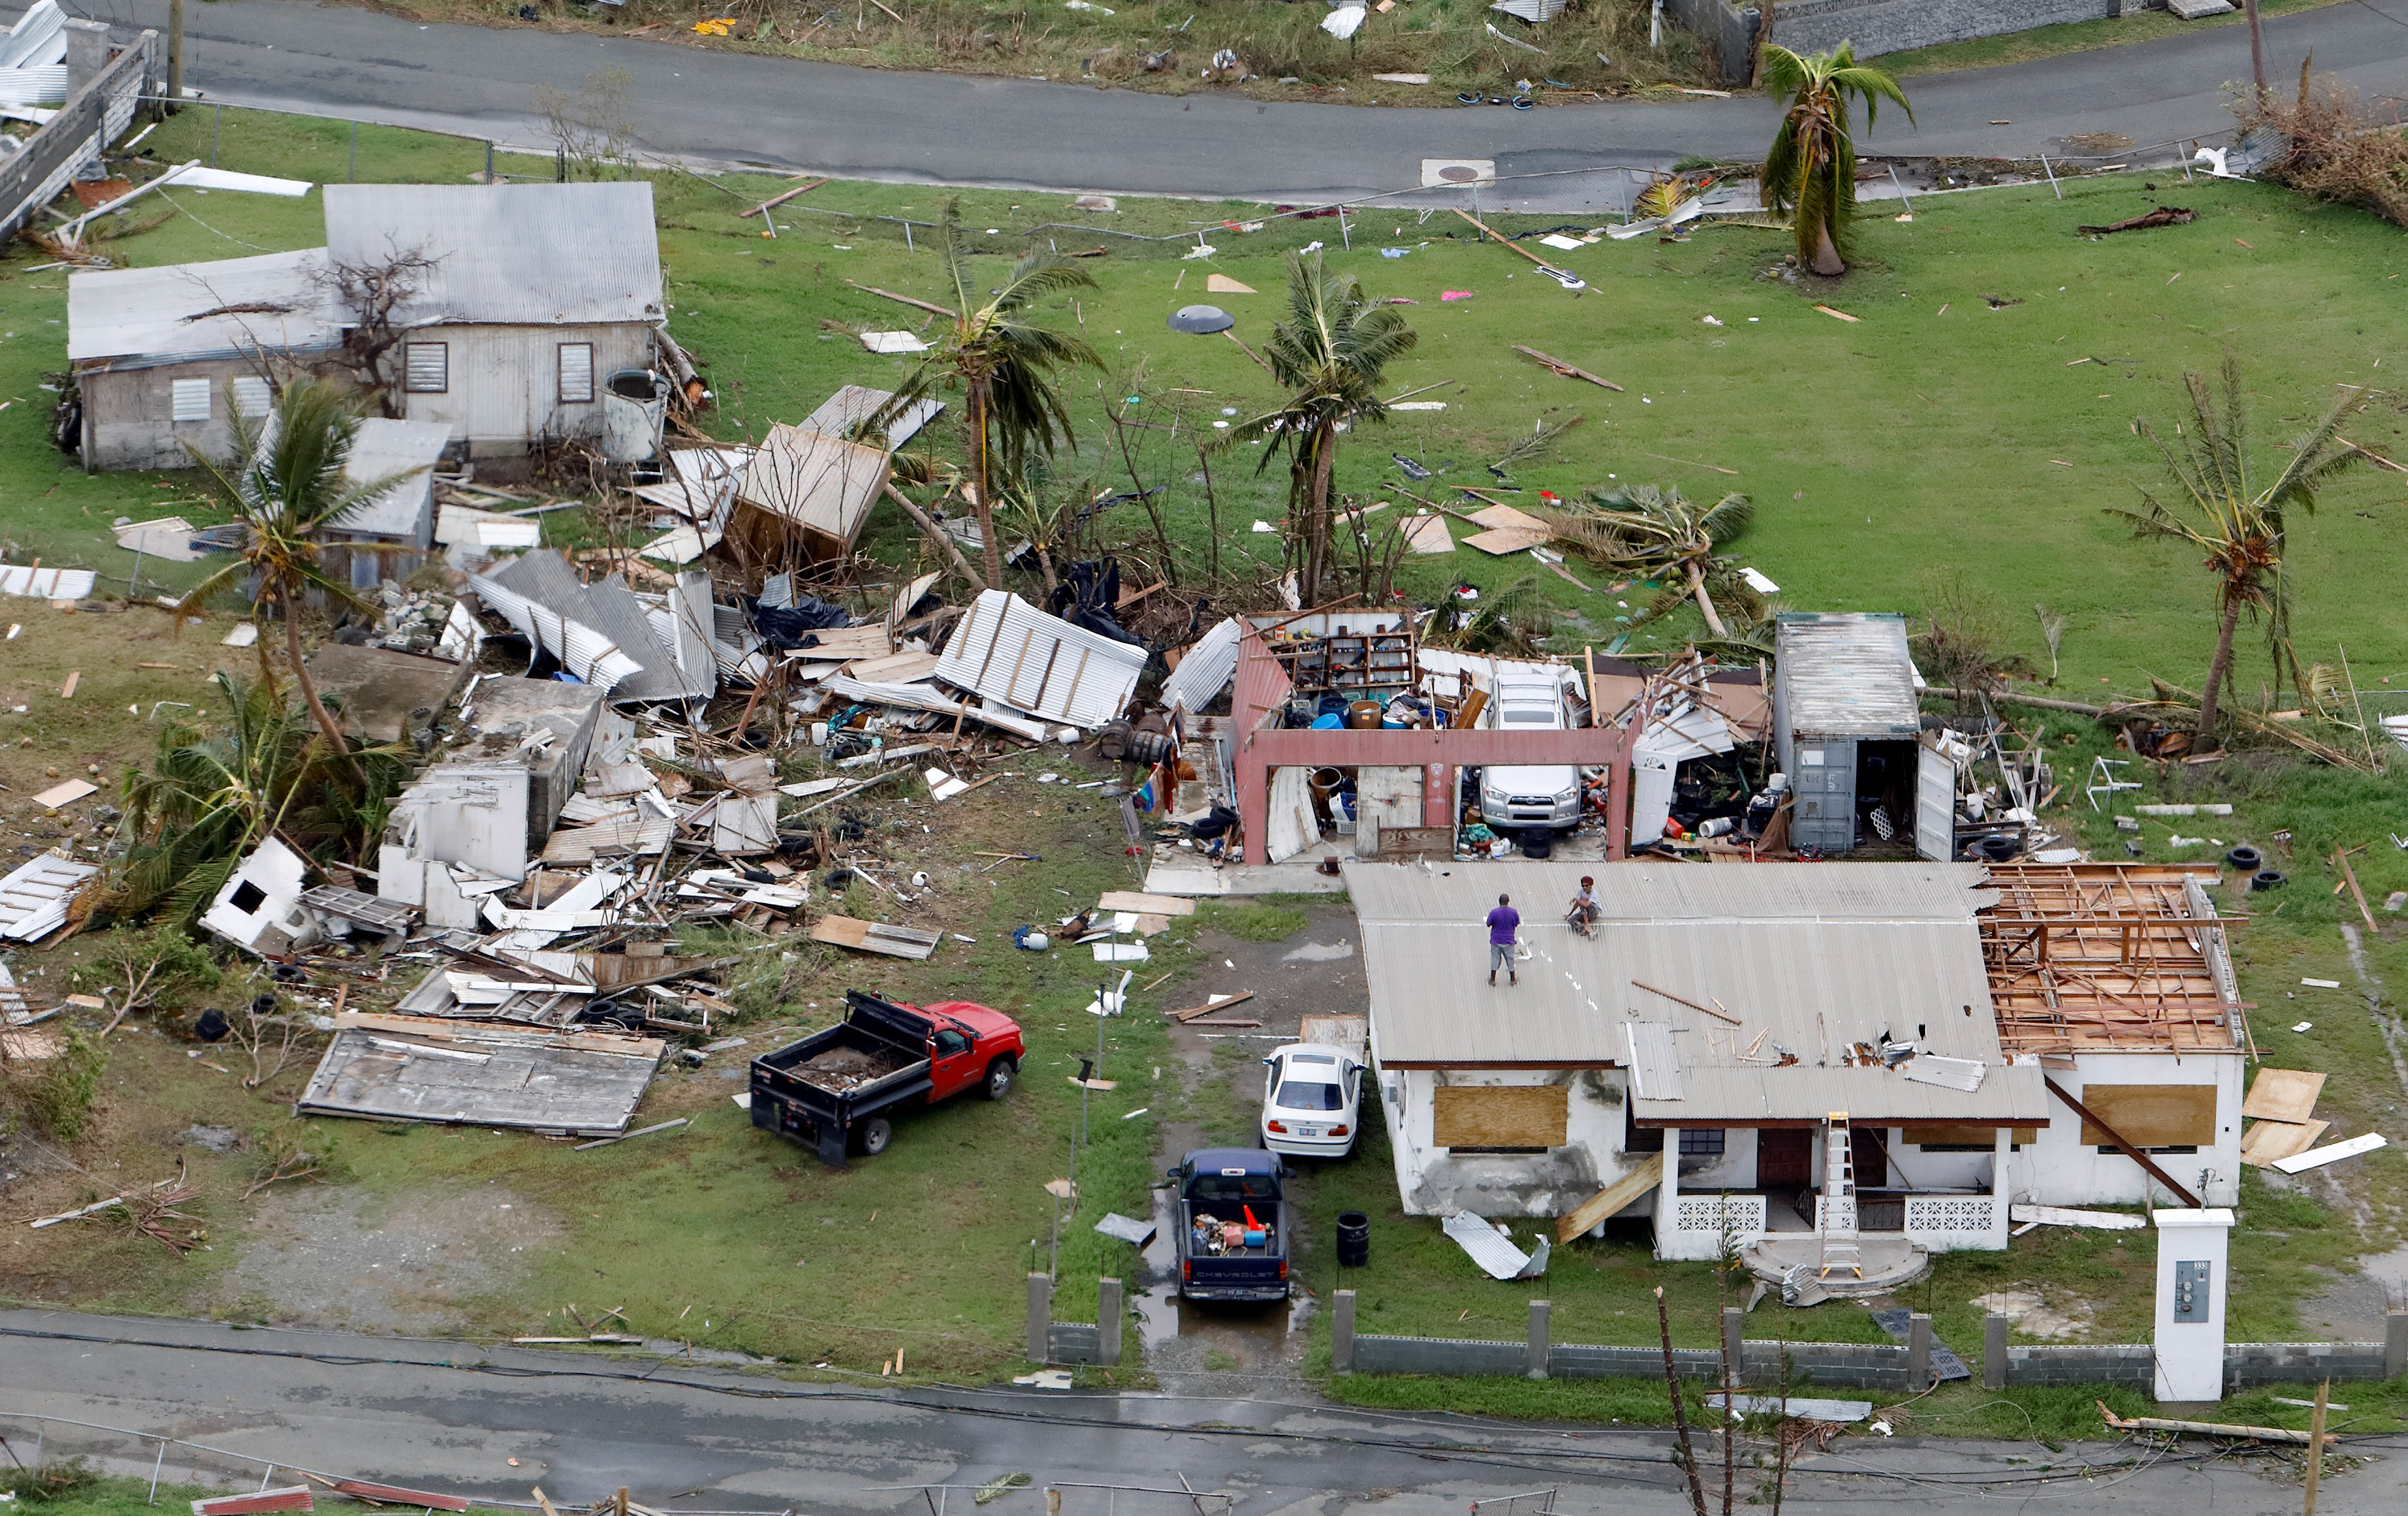 Residents working on their roof in badly damaged neighborhood are seen from a Marine Corps MV-22 Osprey surveying the aftermath from Hurricane Maria in St. Croix, , U.S. Virgin Islands on Sept. 21, 2017. (REUTERS/Jonathan Drake)